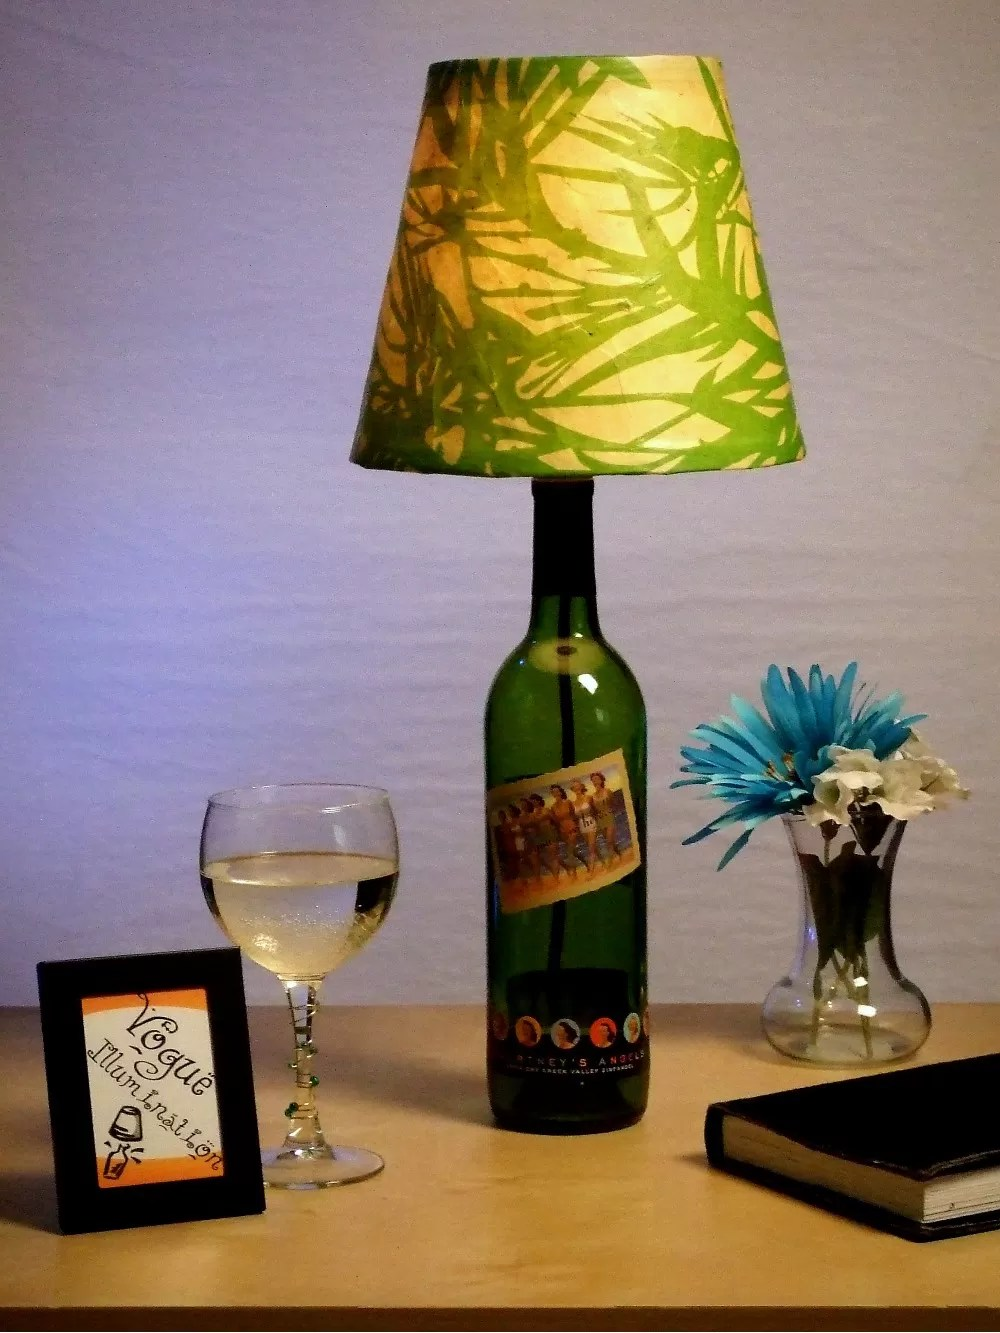 Recycled Plastic Bottle Lamp 12 Ways To Make A Wine Bottle Lamp Guide Patterns